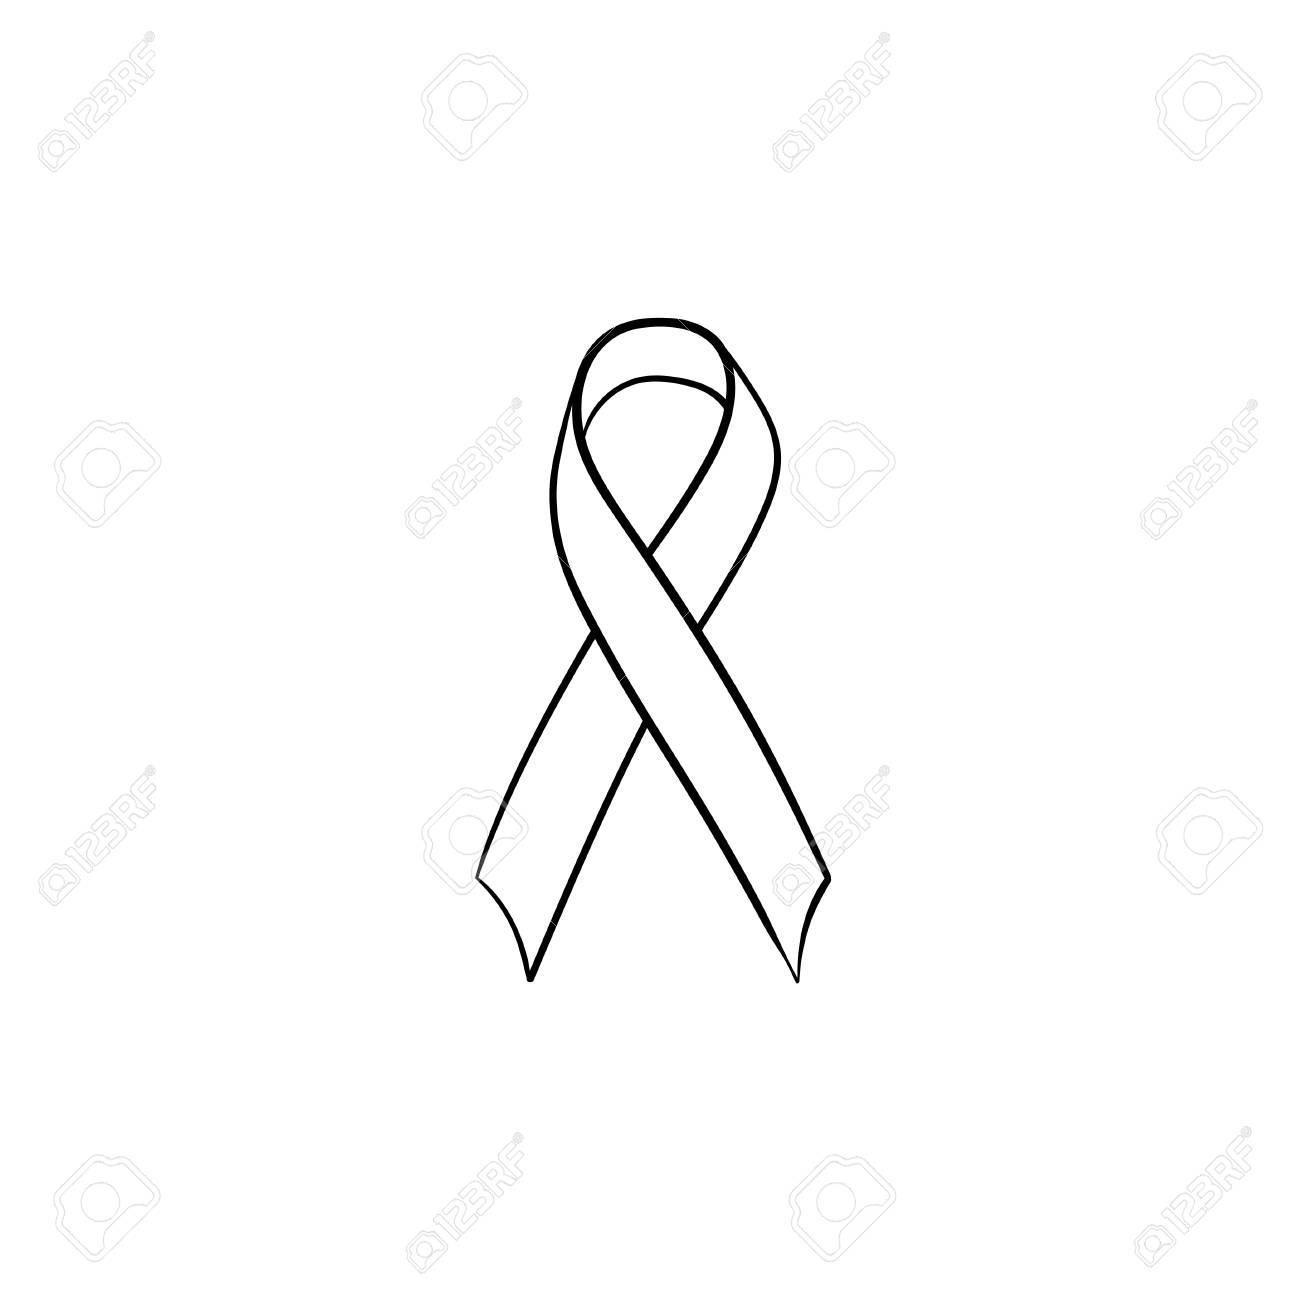 Awareness Ribbon Hand Drawn Outline Doodle Icon Breast Cancer